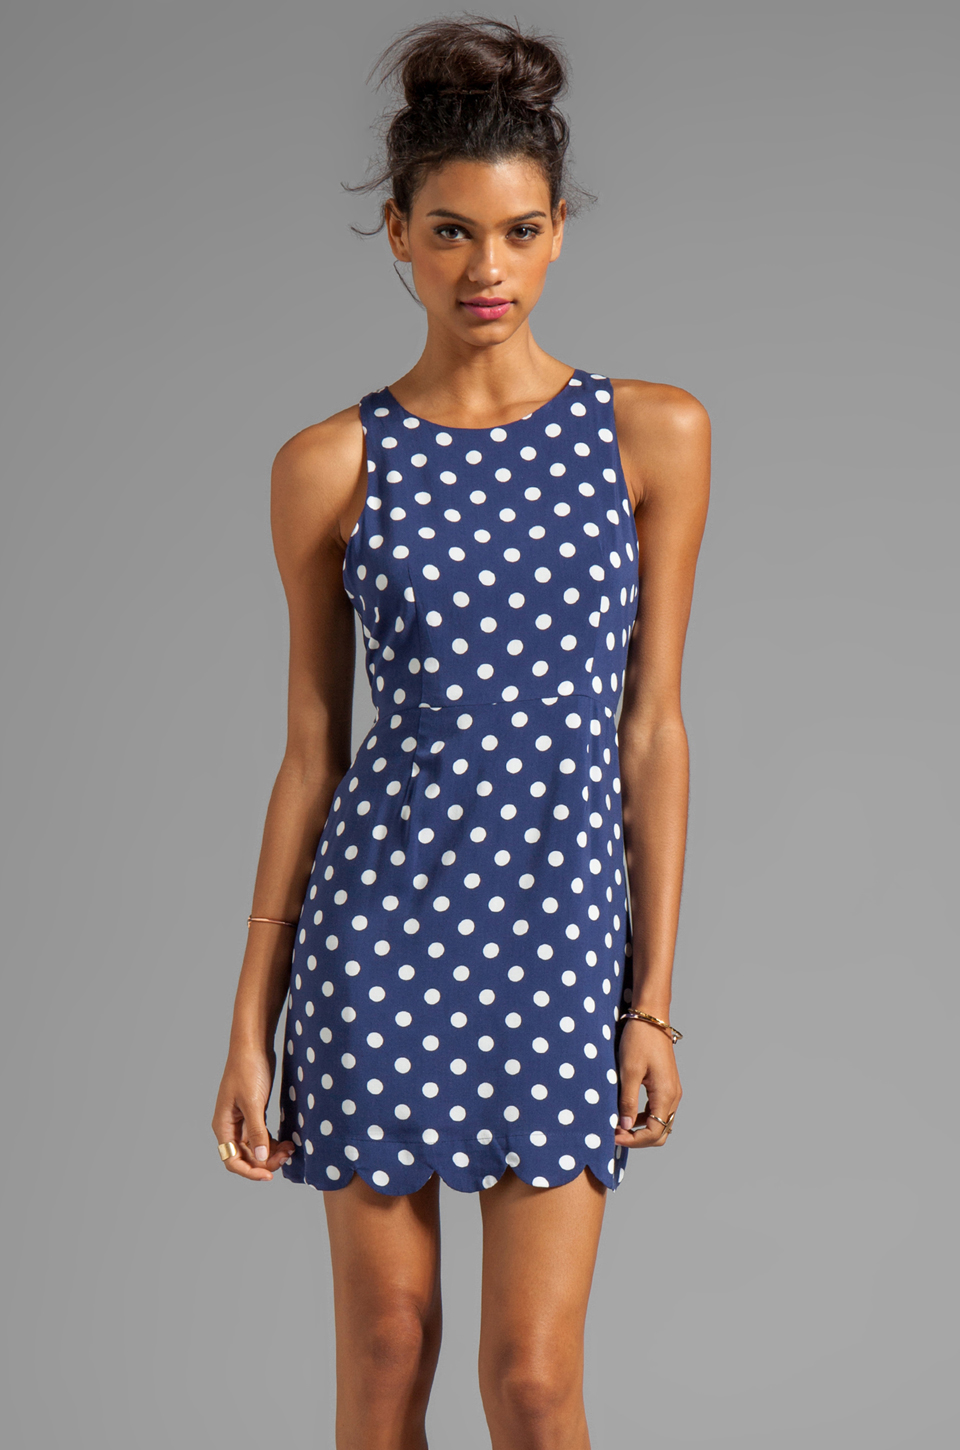 MINKPINK Forget Me Not Dress in Navy